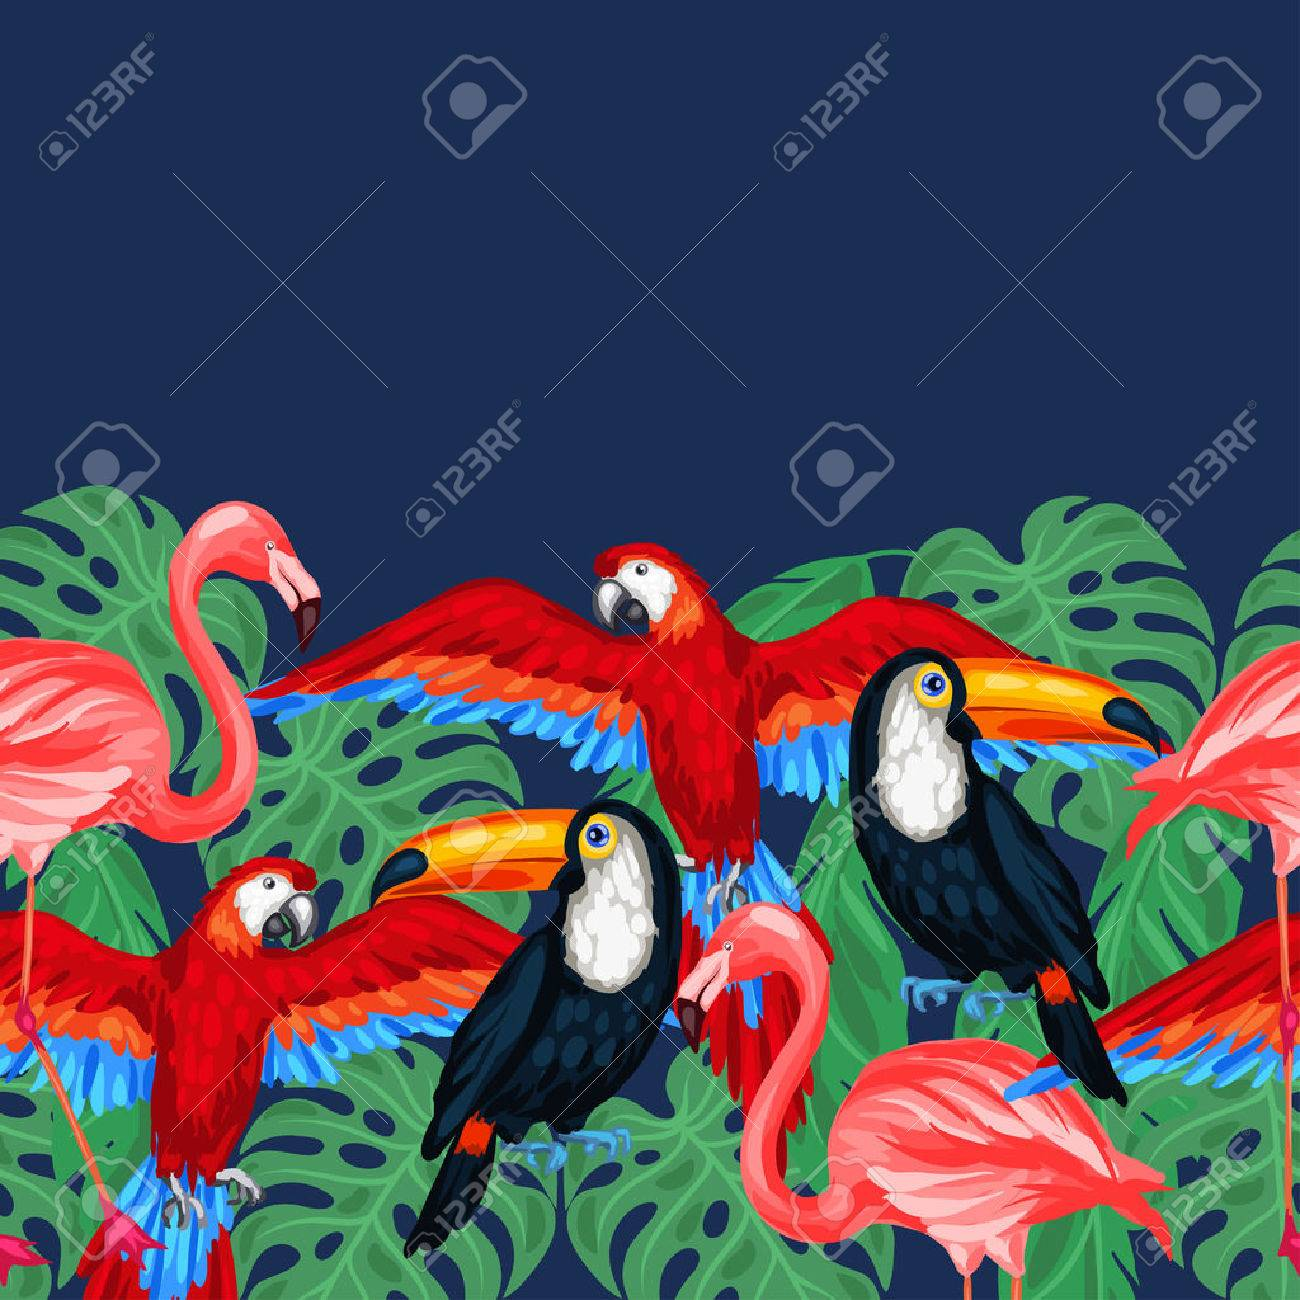 Tropical birds seamless pattern with palm leaves. Stock Vector - 47864951